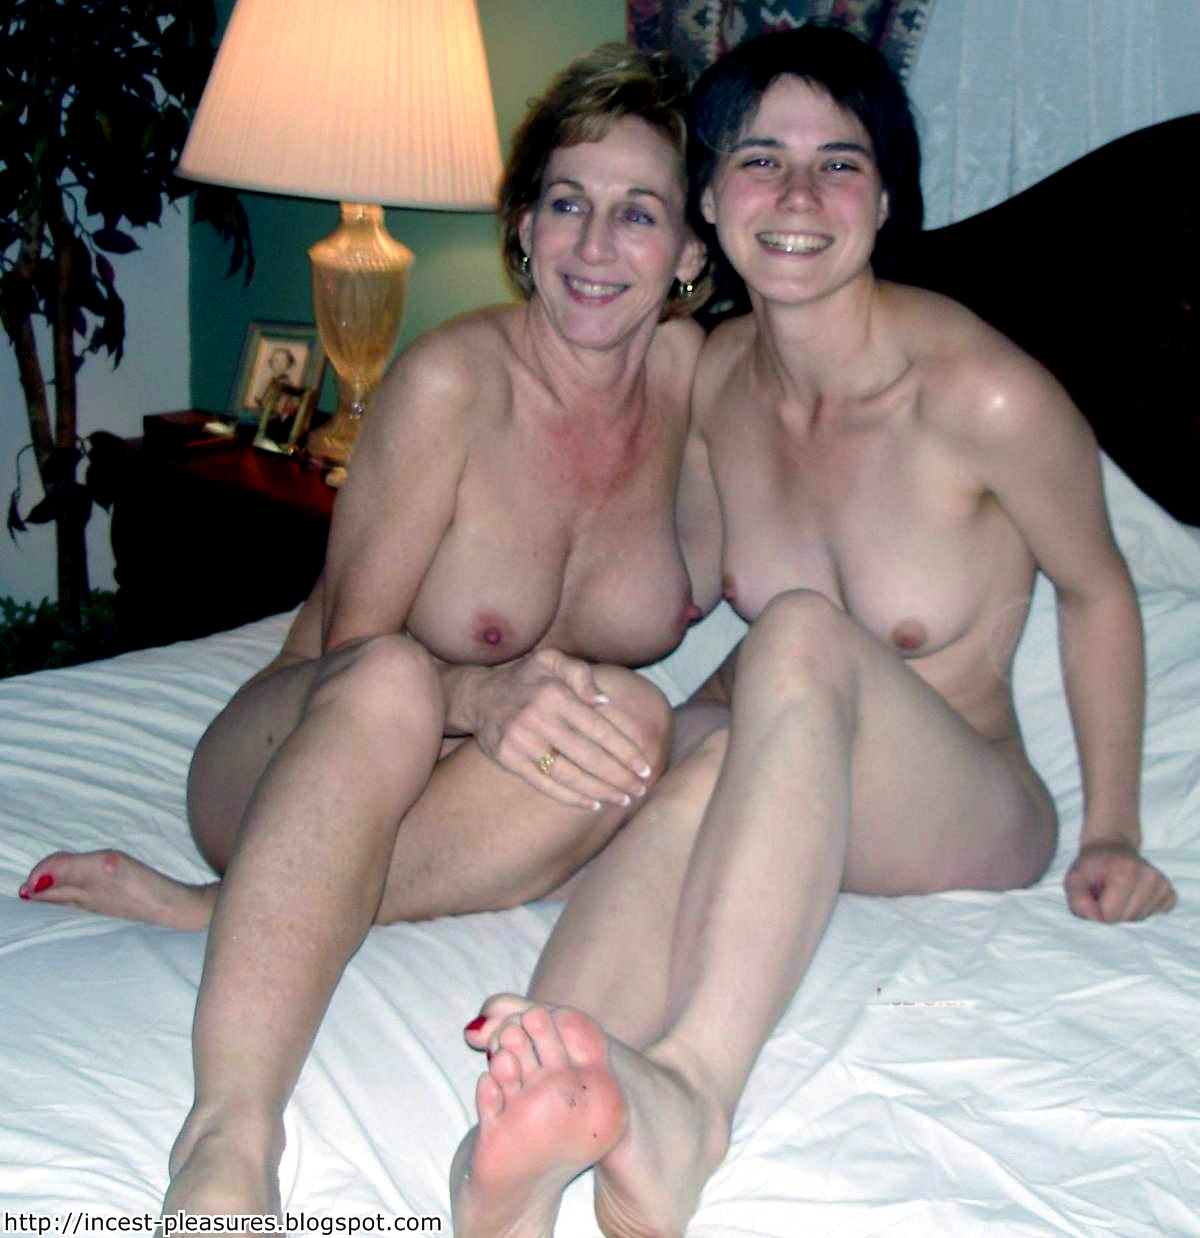 The S e x mom with daughter at home not pay